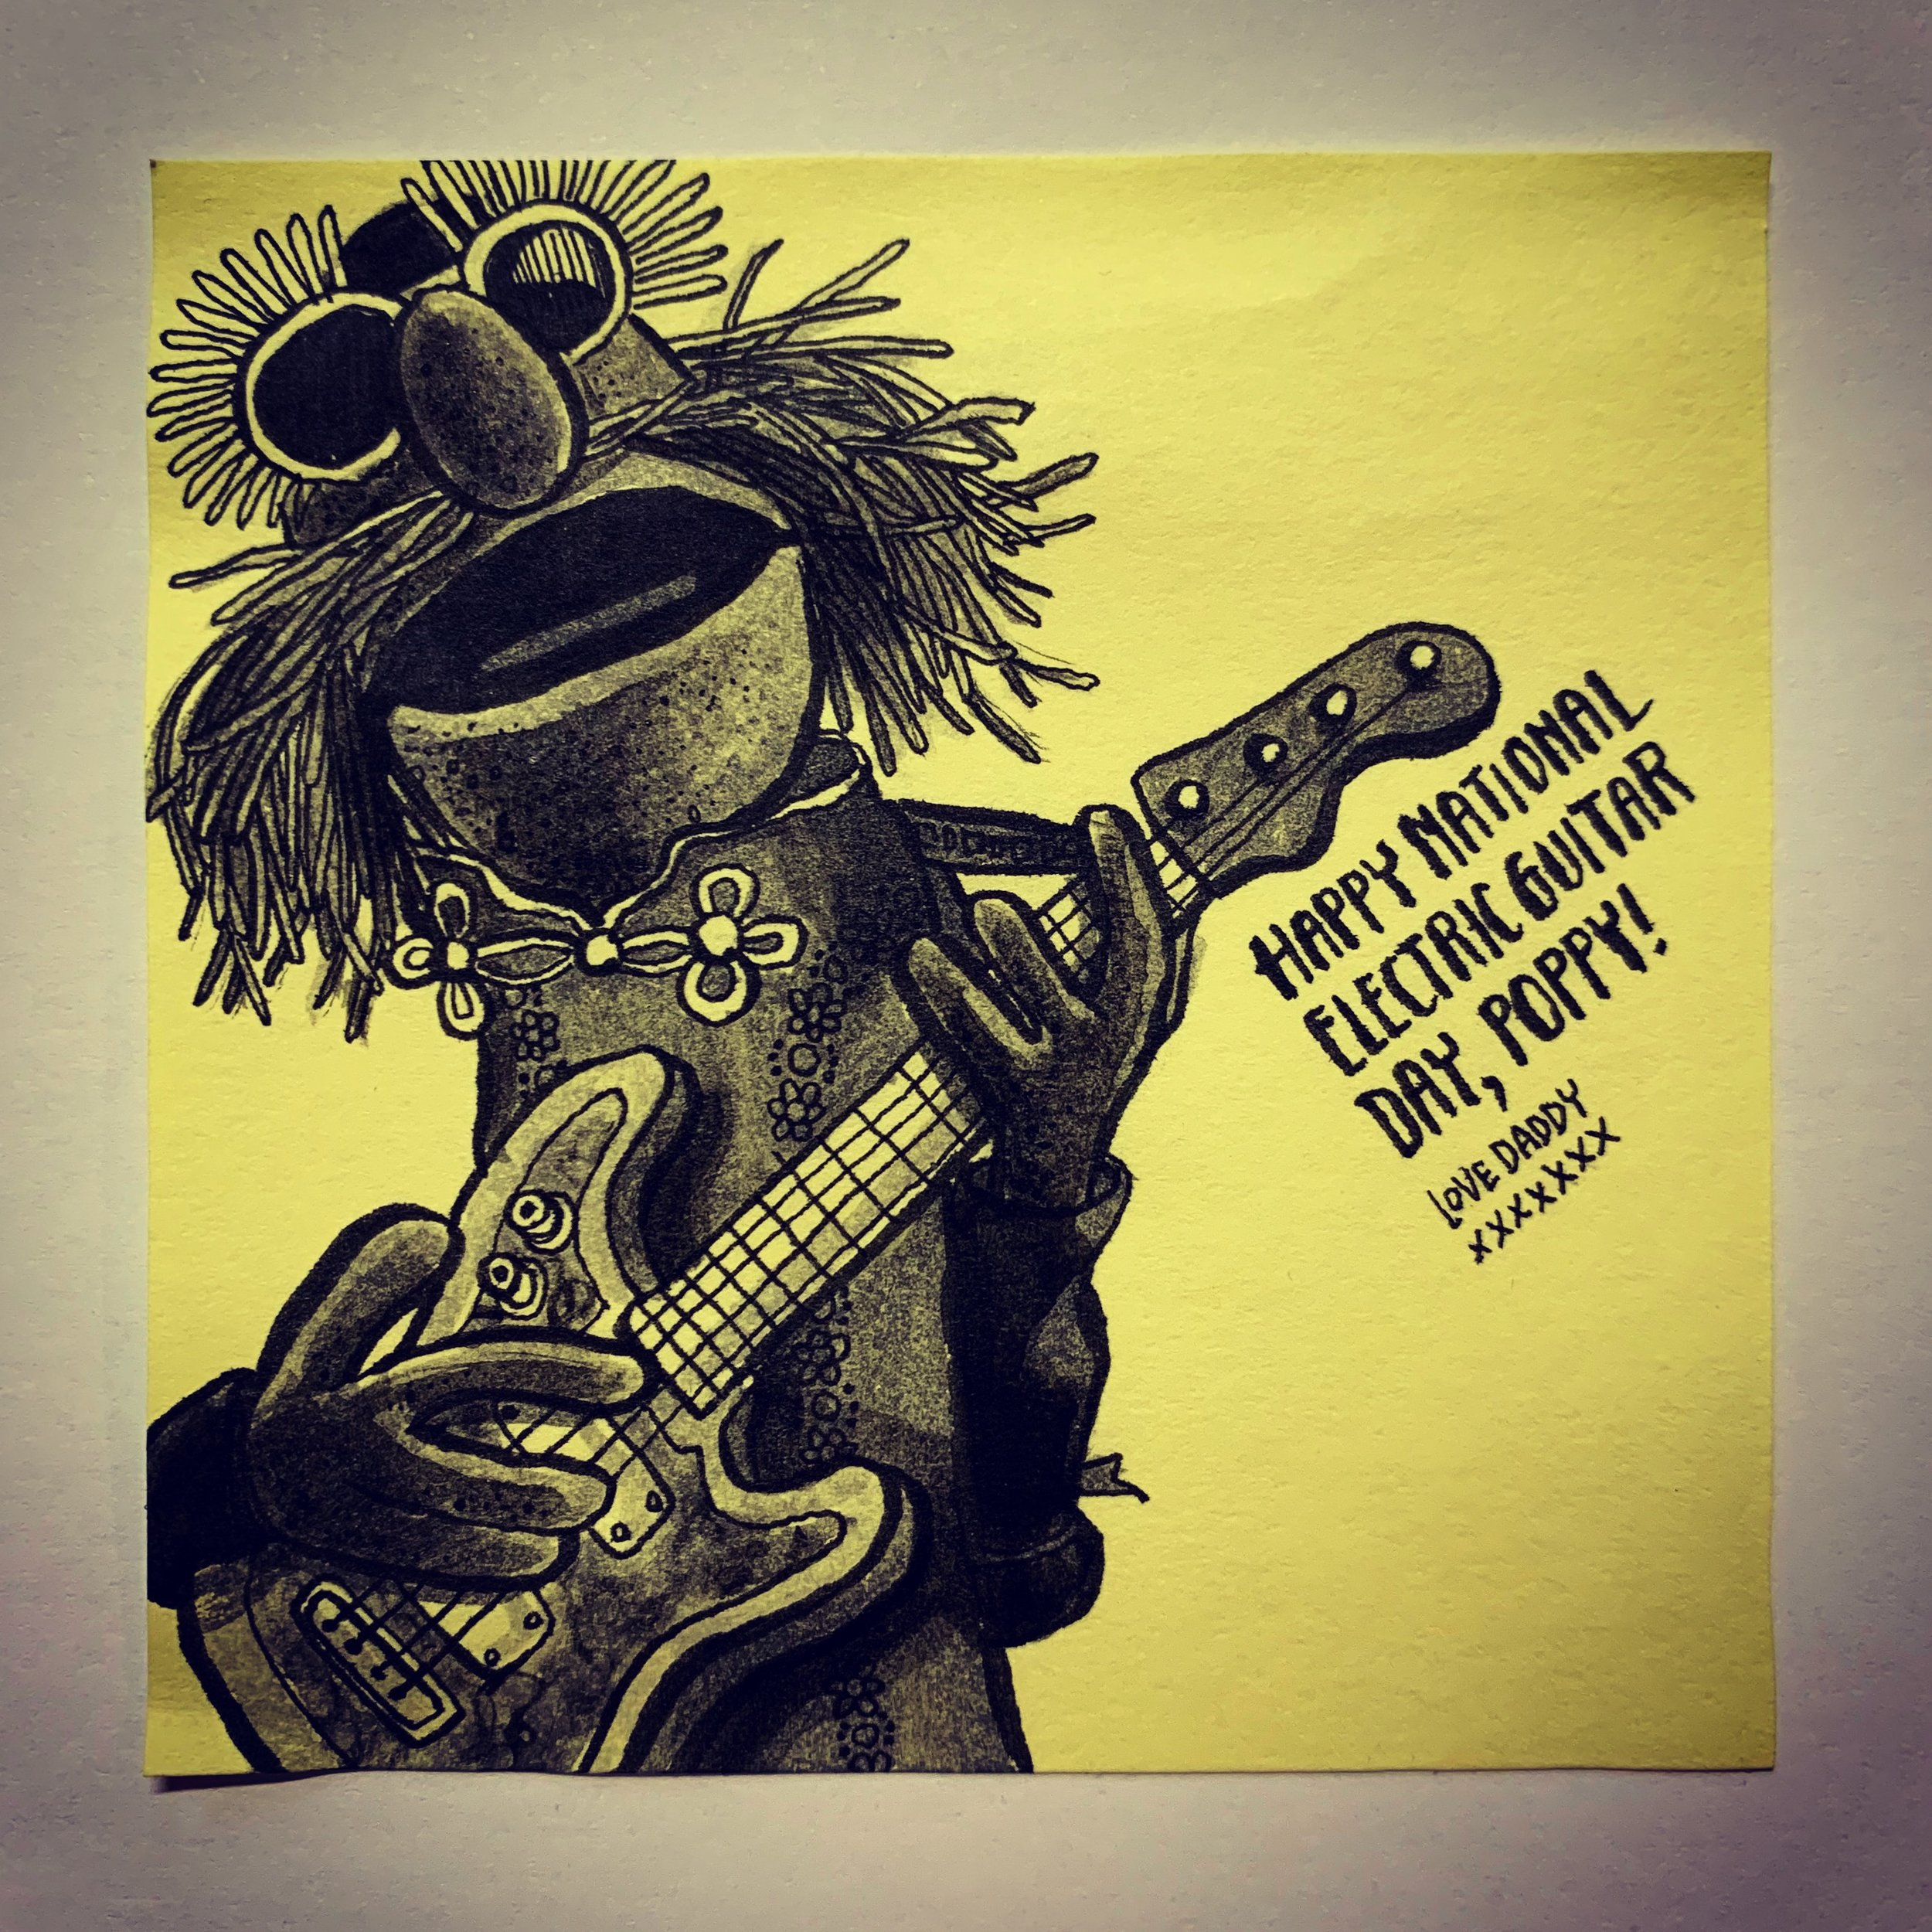 Floyd from Electric Mayhem